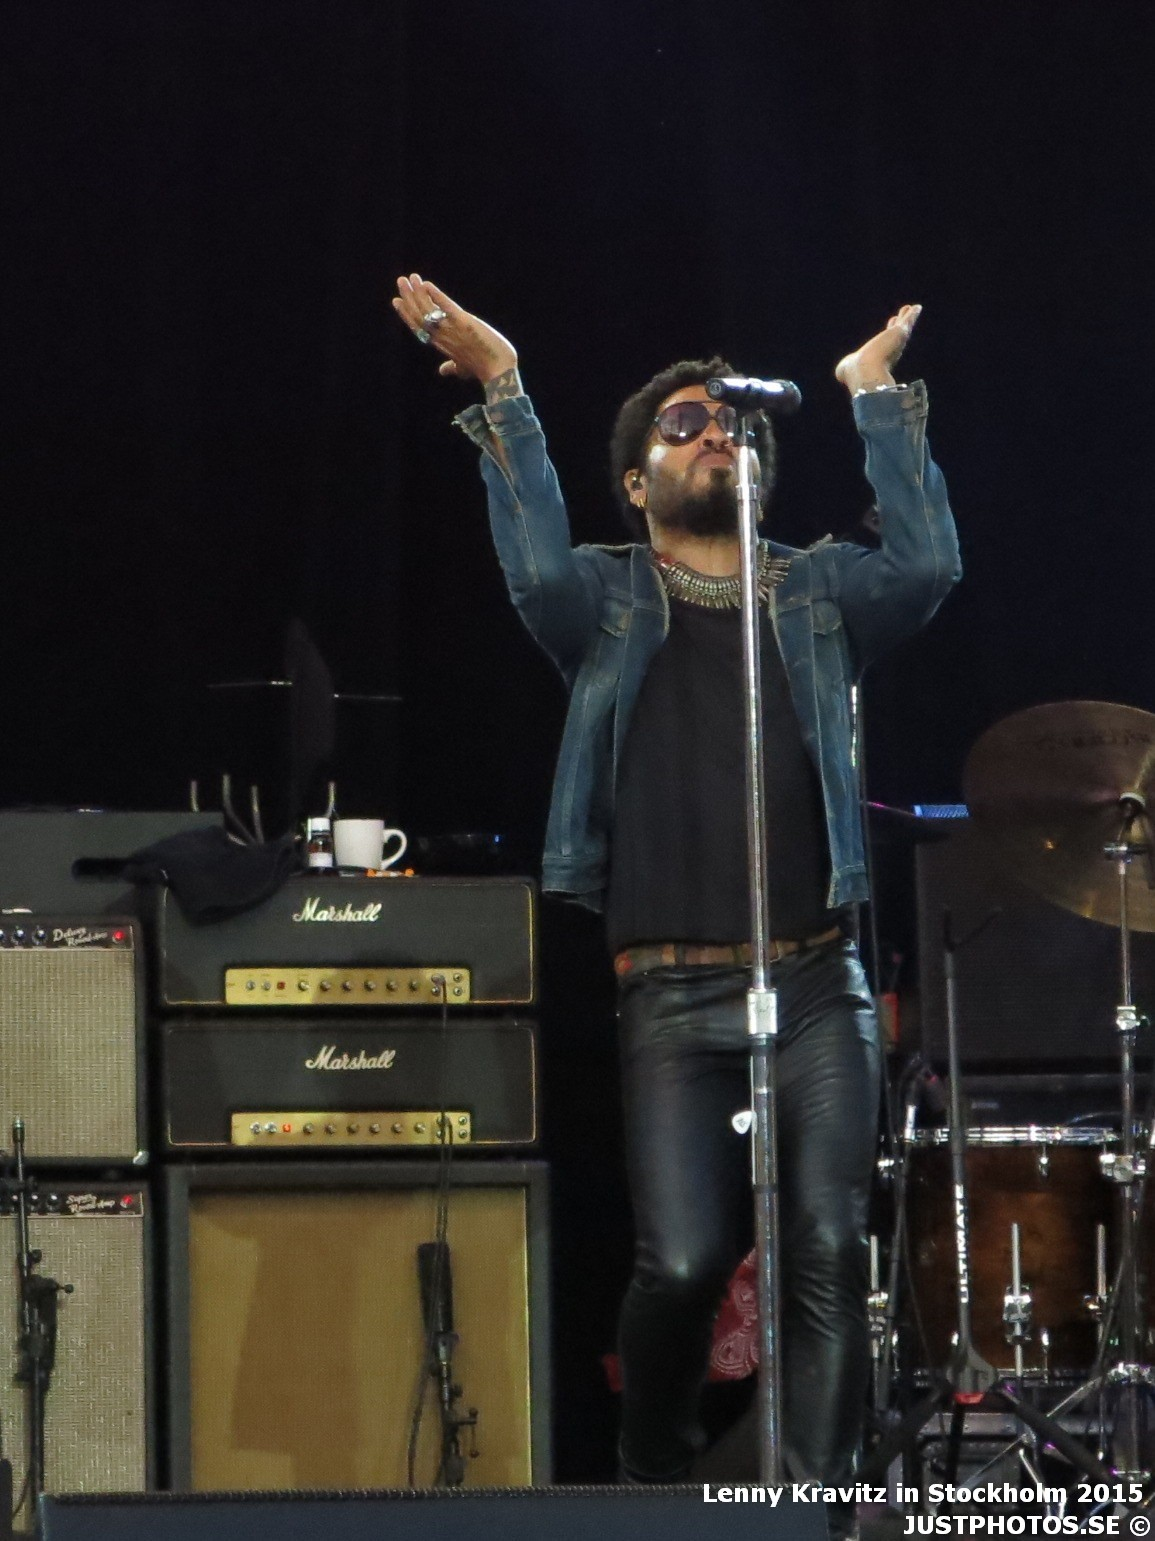 Lenny Kravitz in Stockholm 2015 (concert photos) – Just photos